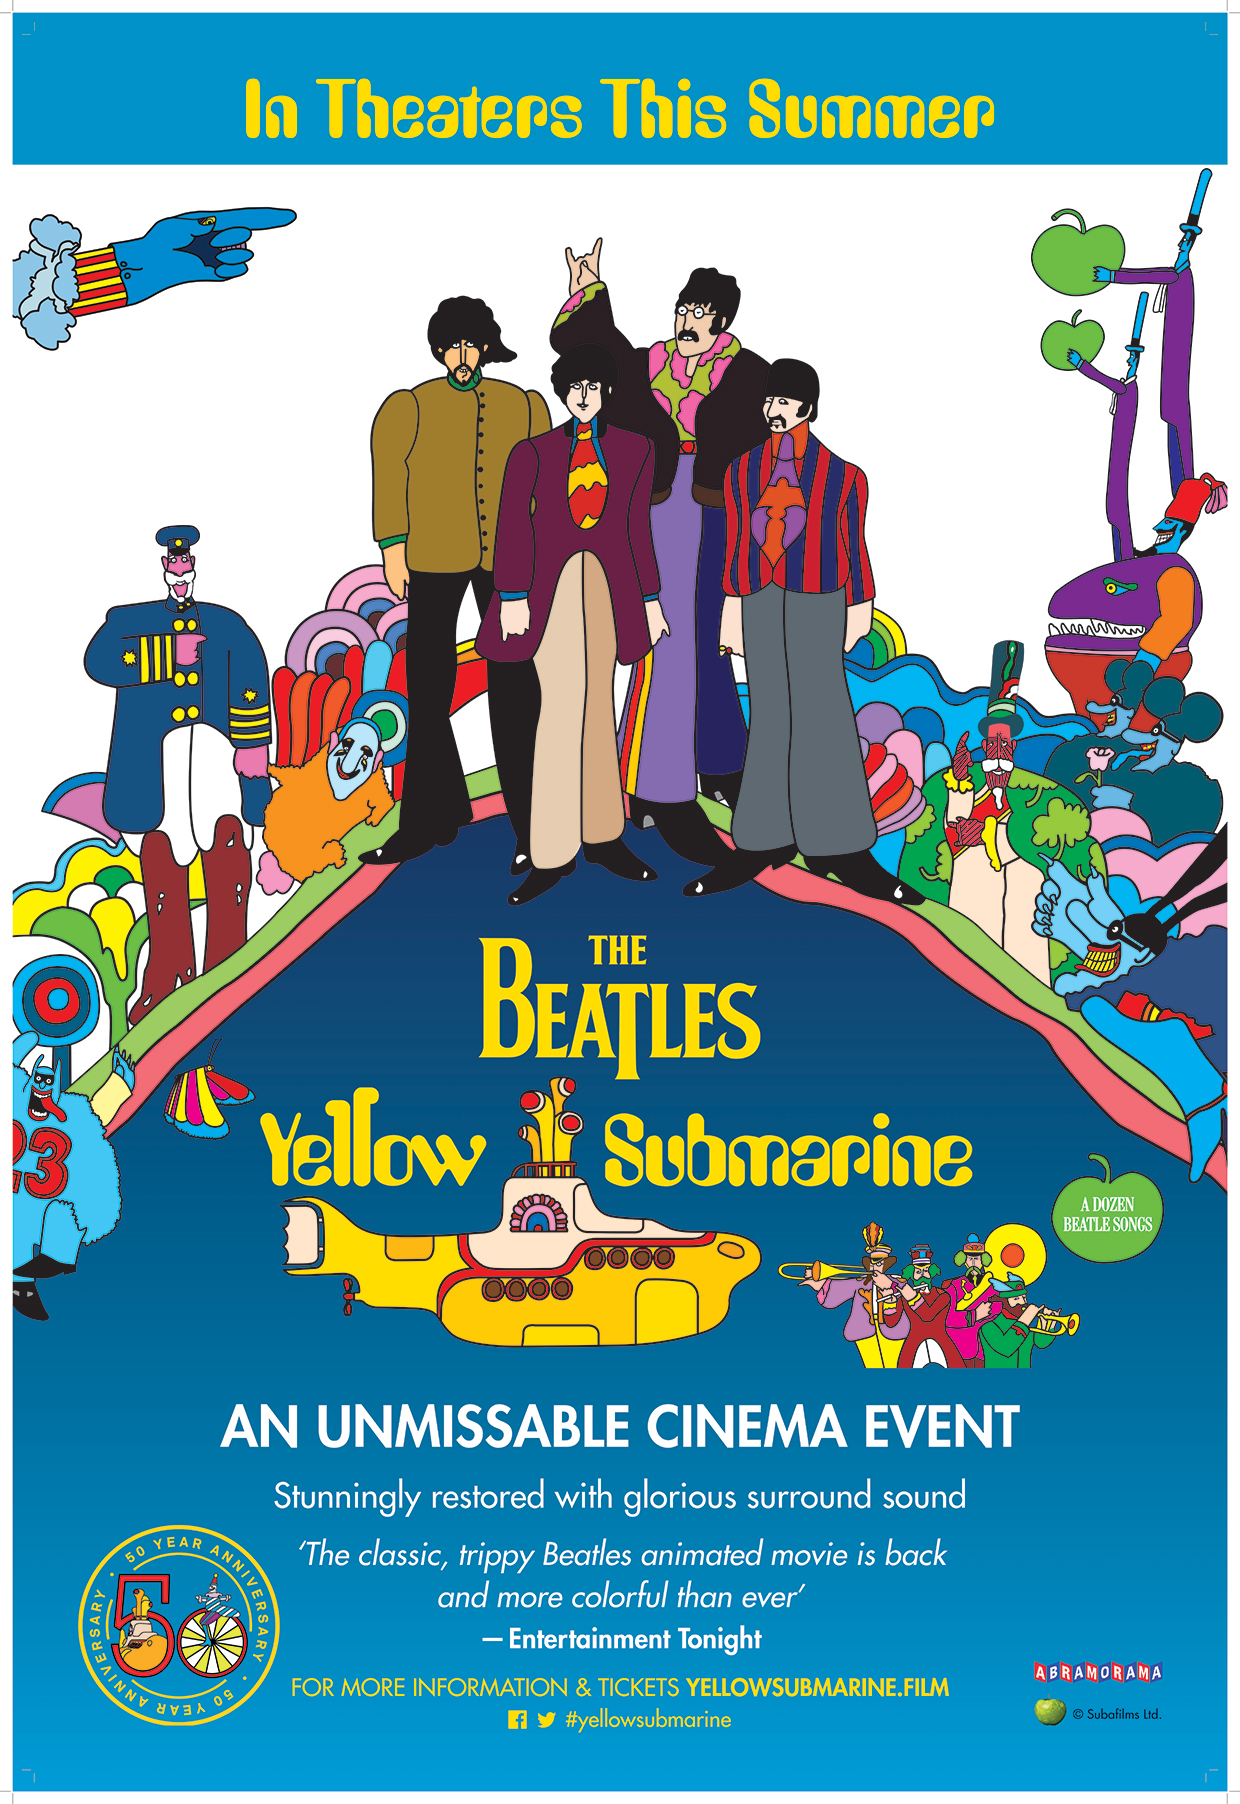 The Beatles Yellow Submarine Returning To Theaters For ...